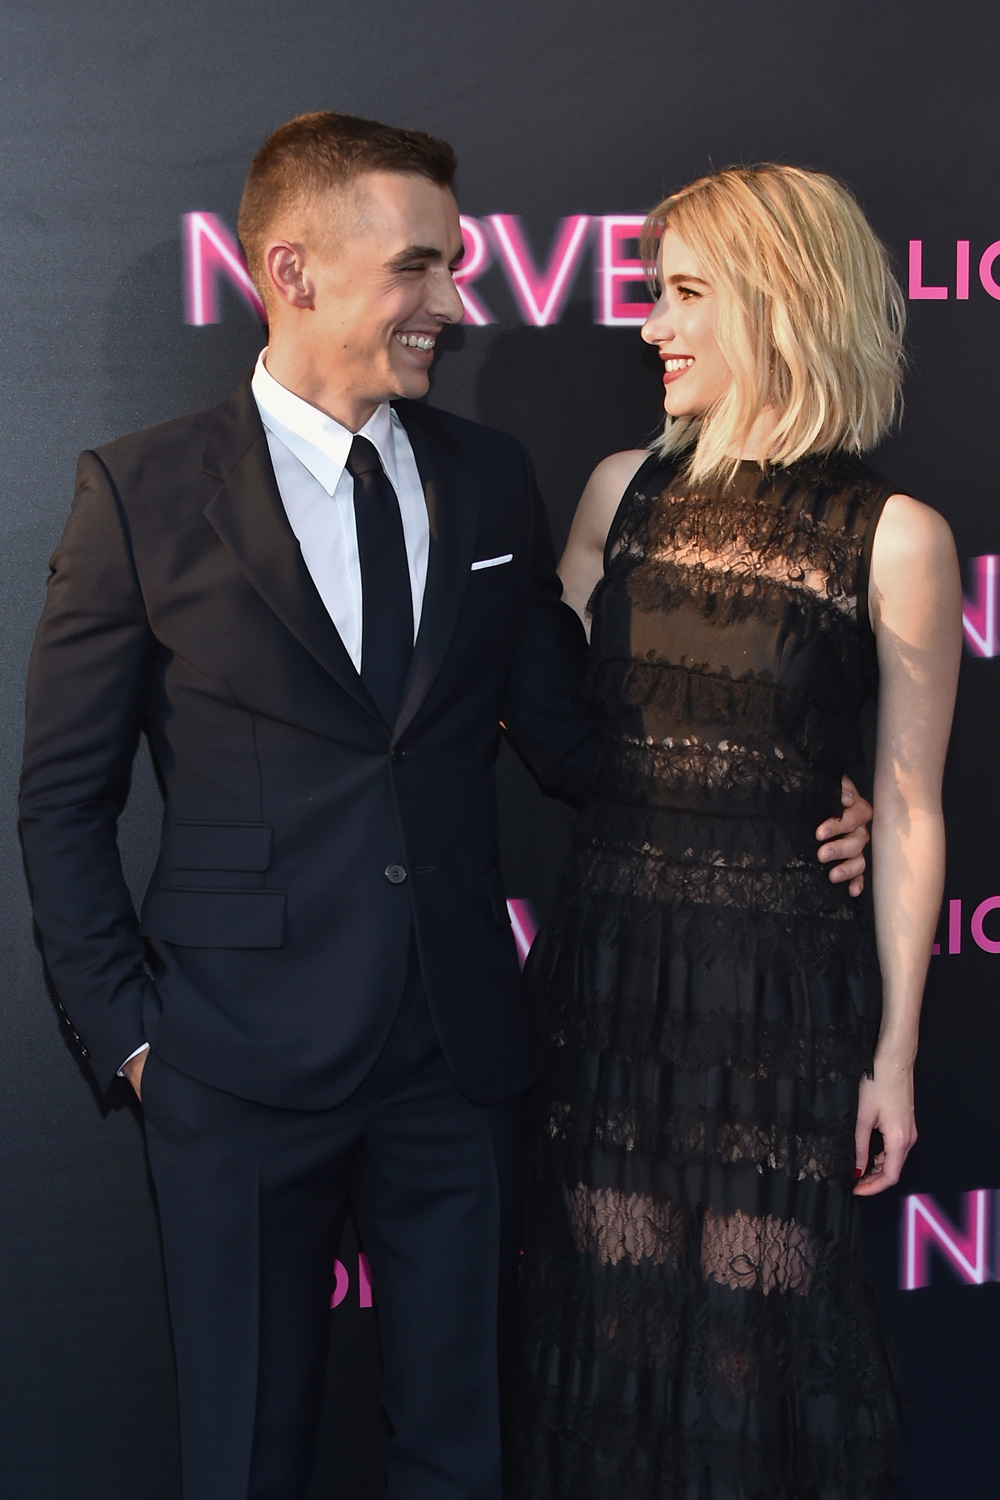 Dave-Franco-Emma-Roberts-Nerve-NY-Movie-Premiere-Red-Carpet-Fashion-Elie-Saab-Tom-Lorenzo-Site (1)